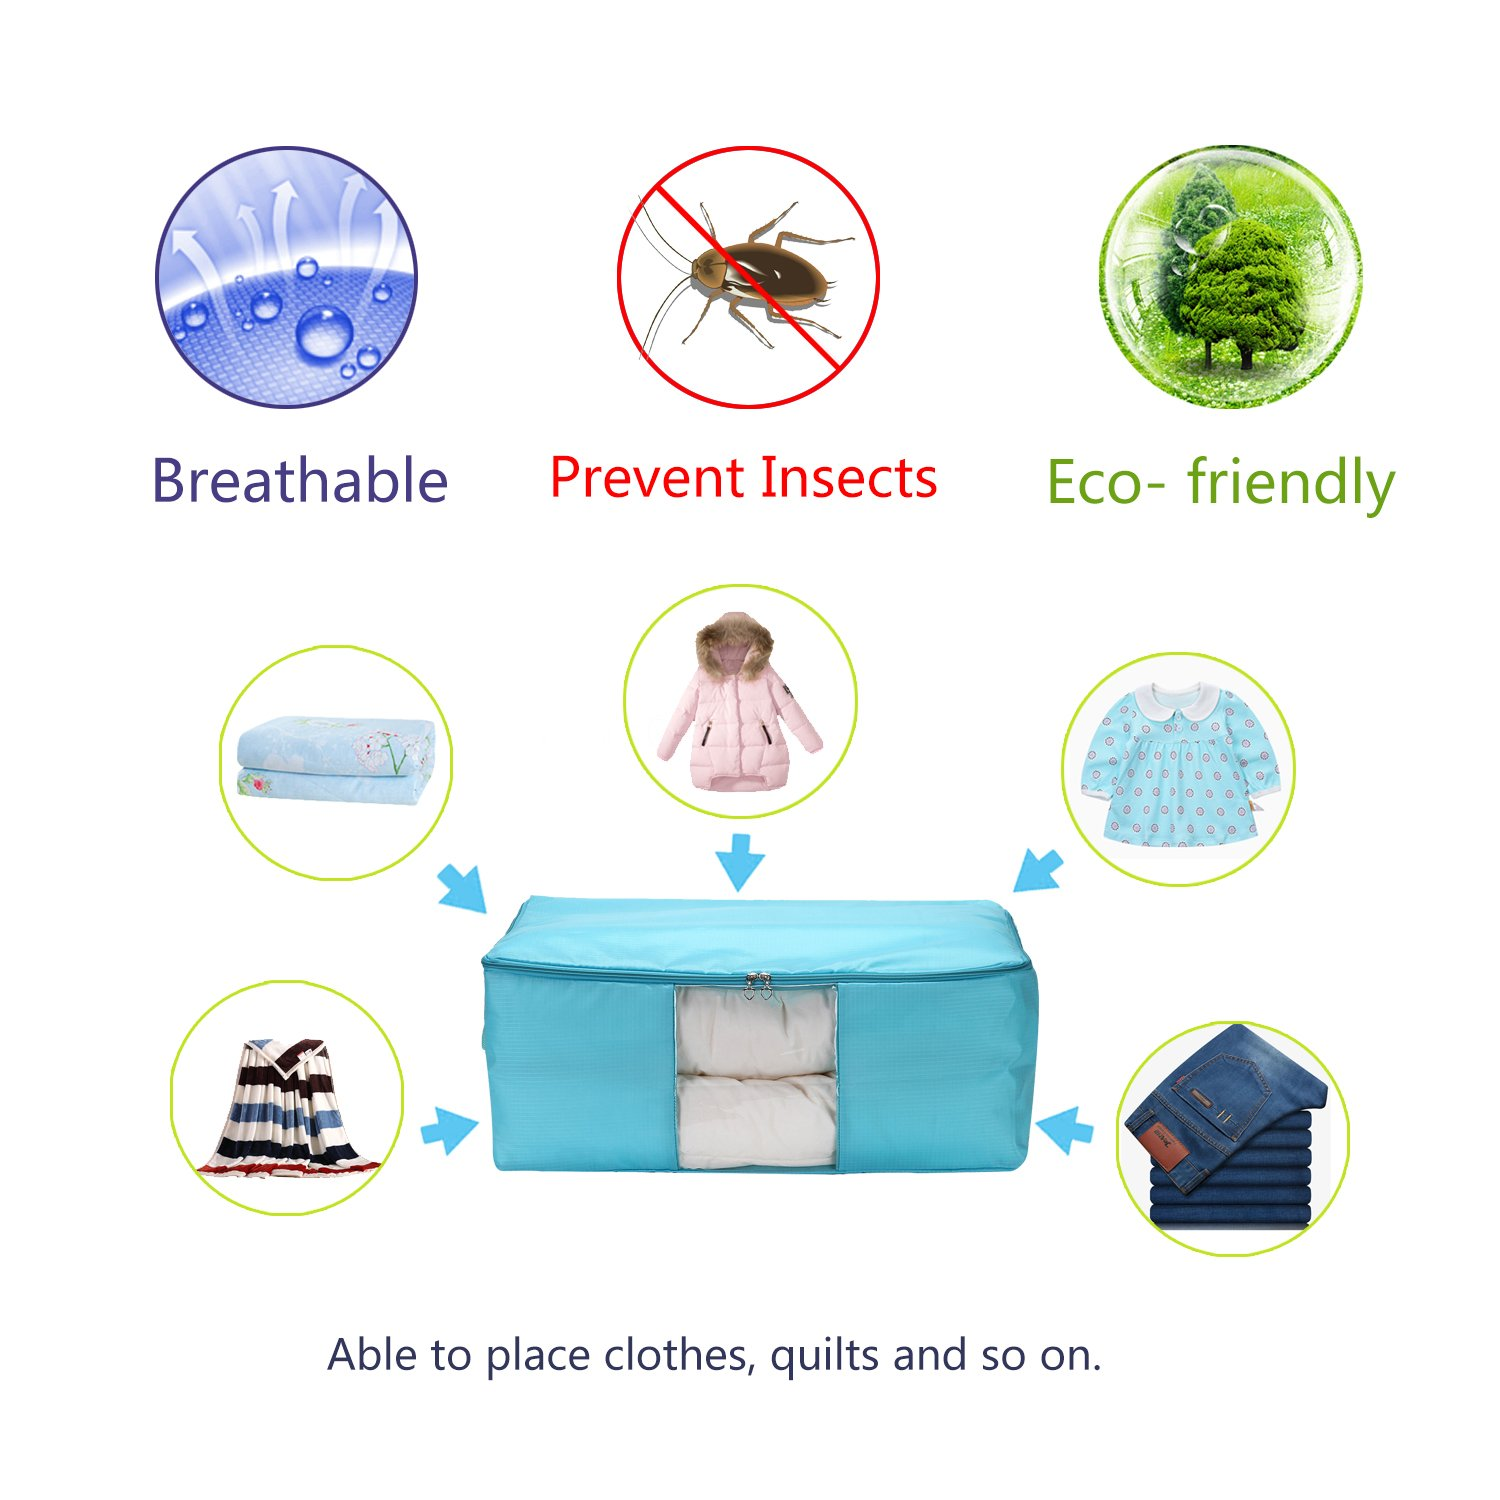 VEAMOR Comforter Storage Bags Containers,Pillow Beddings//Blanket Clothes Organizer Storage Containers with Zippers,Breathable and Moistureproof OXSky Blue 2pcs, M Gao kai